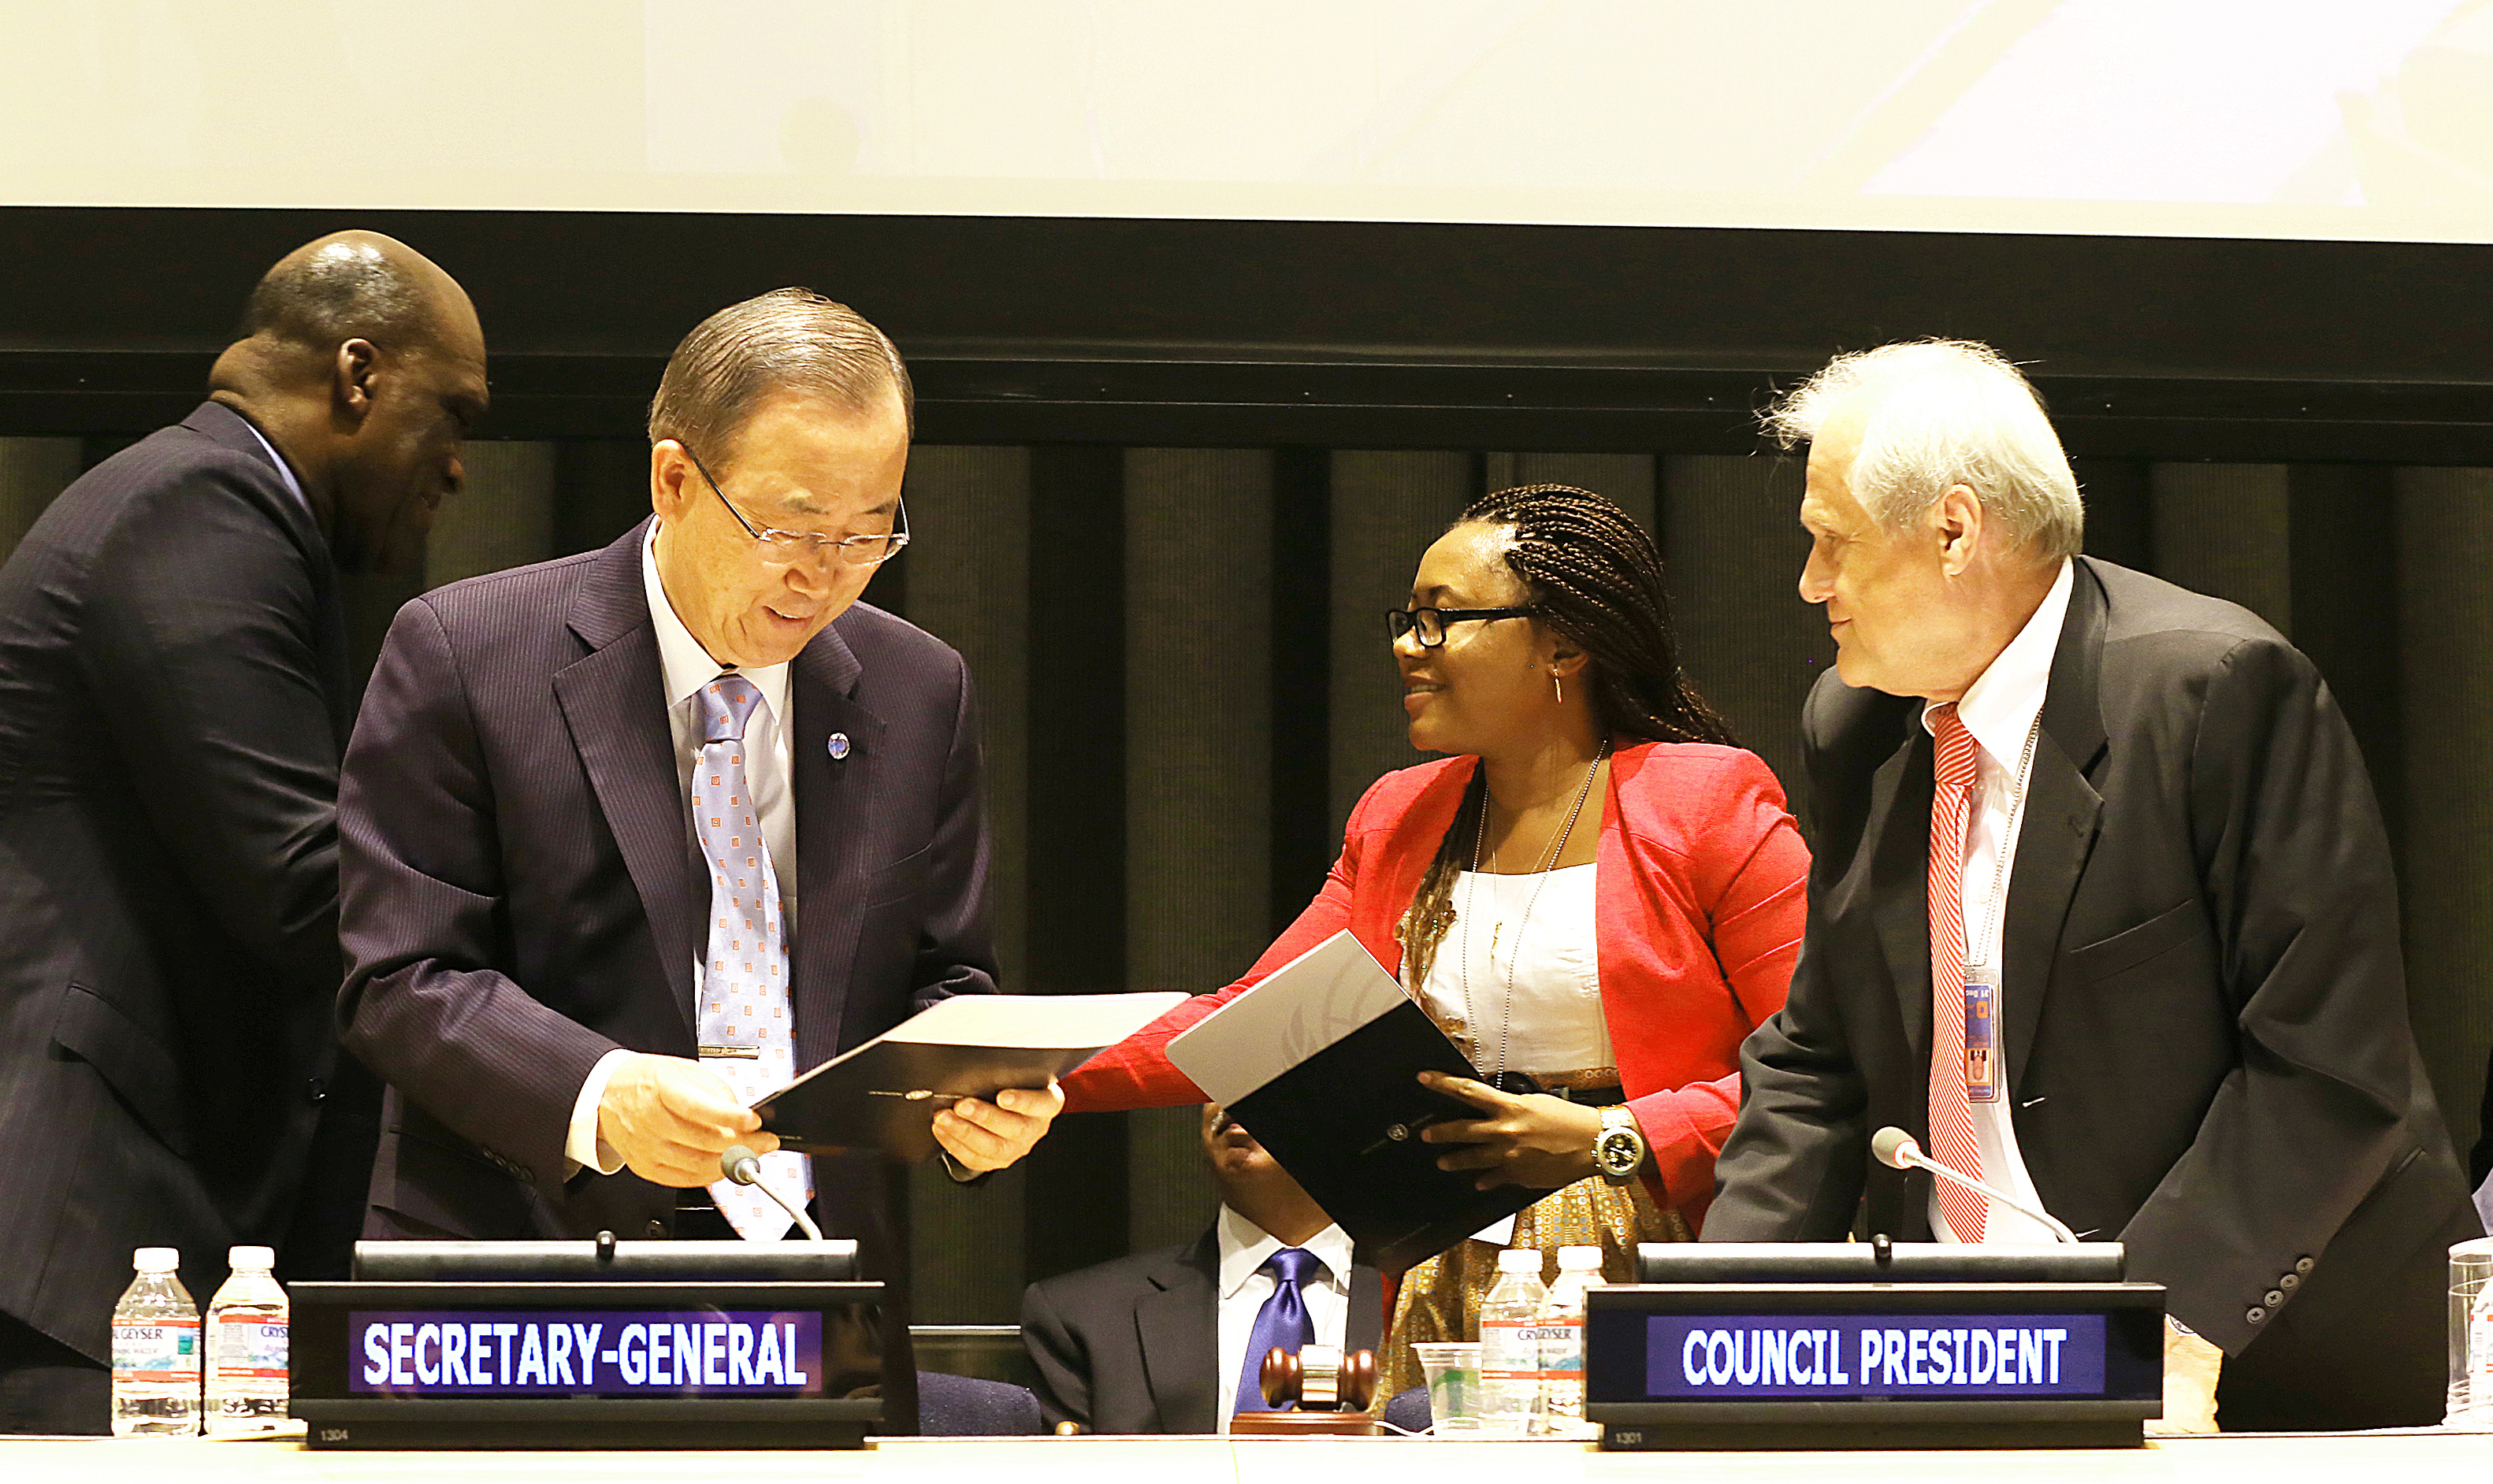 Apply to Speak at the UN General Assembly Session on Climate Change 2015 – New York, USA